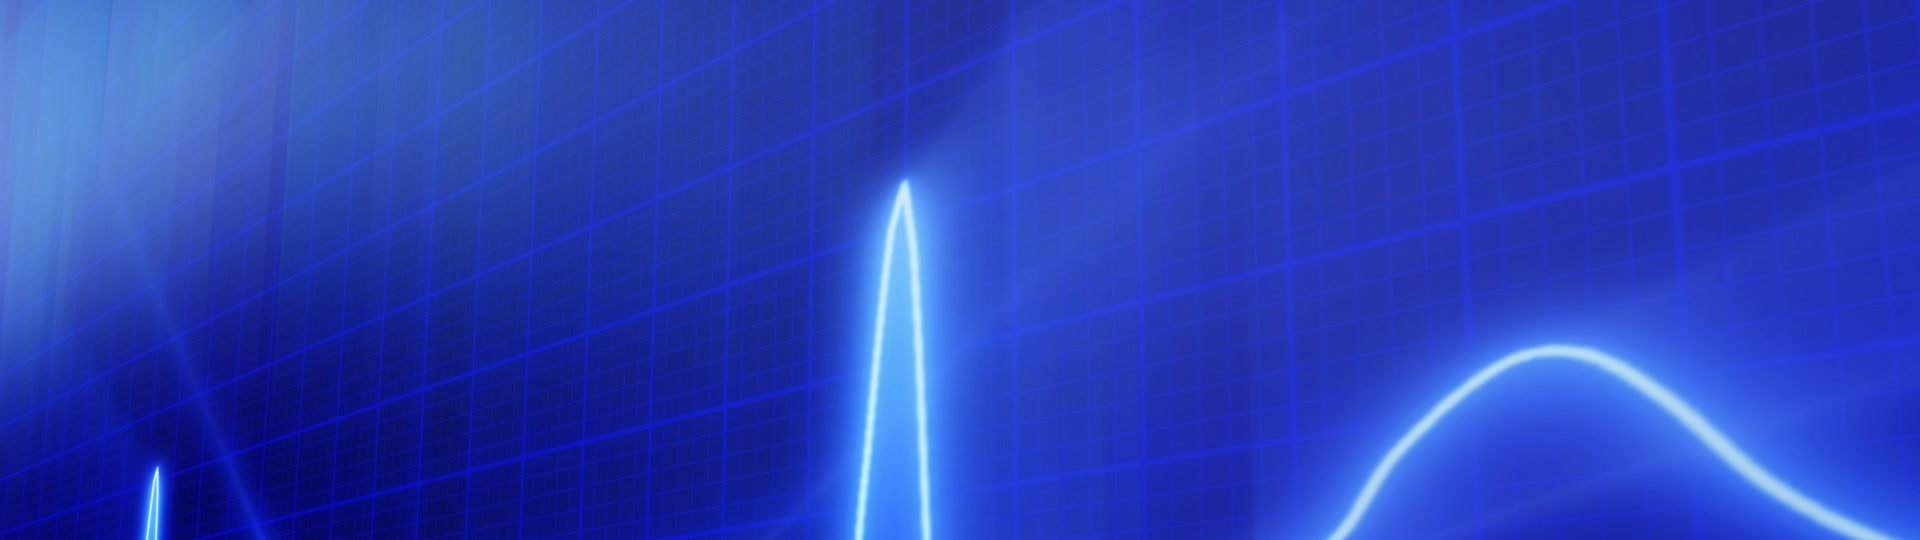 Seamless loop blue background EKG electrocardiogram pulse real waveform | computer generated loopable medical motion background. Progressive Scan - ID:12346